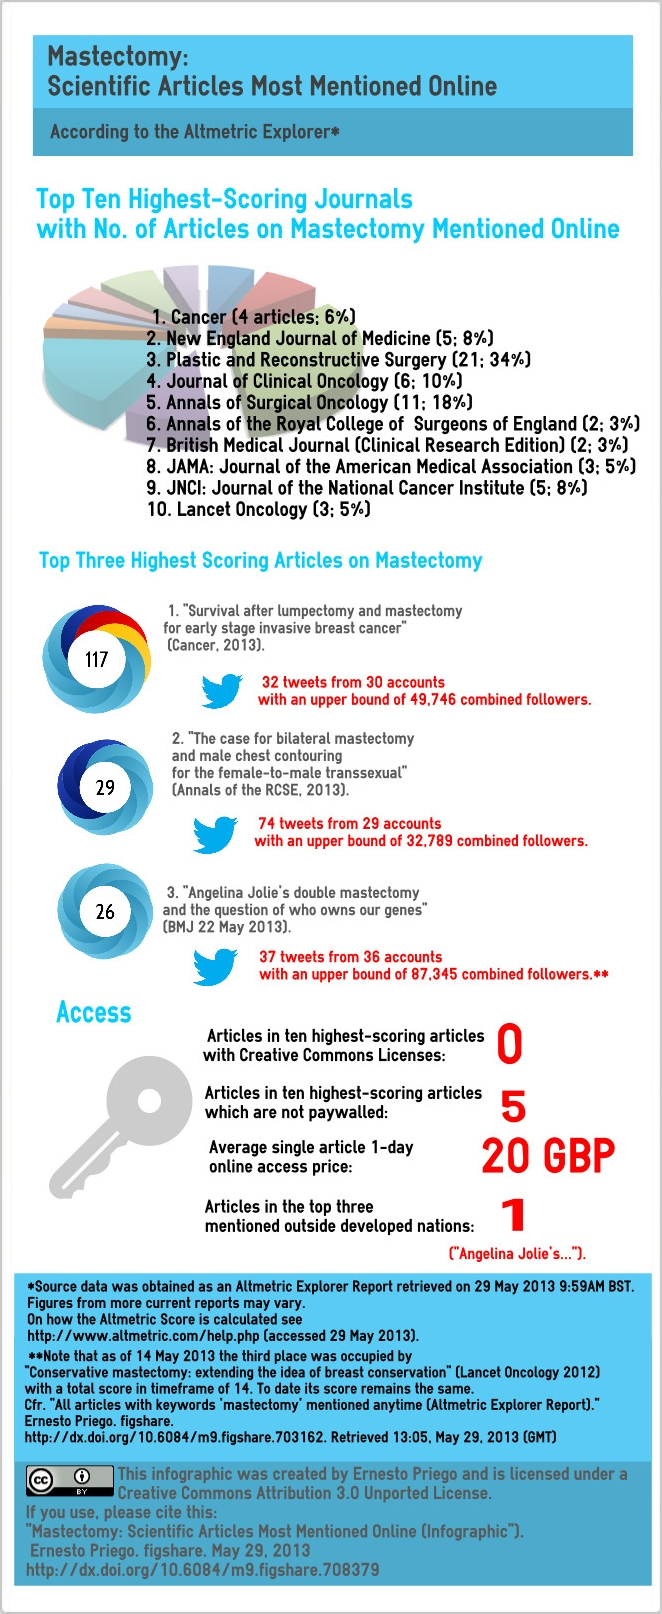 Angelina Jolie, Transexuals and Survival: Journal Articles on Mastectomy Most Mentioned Online (Infographic)